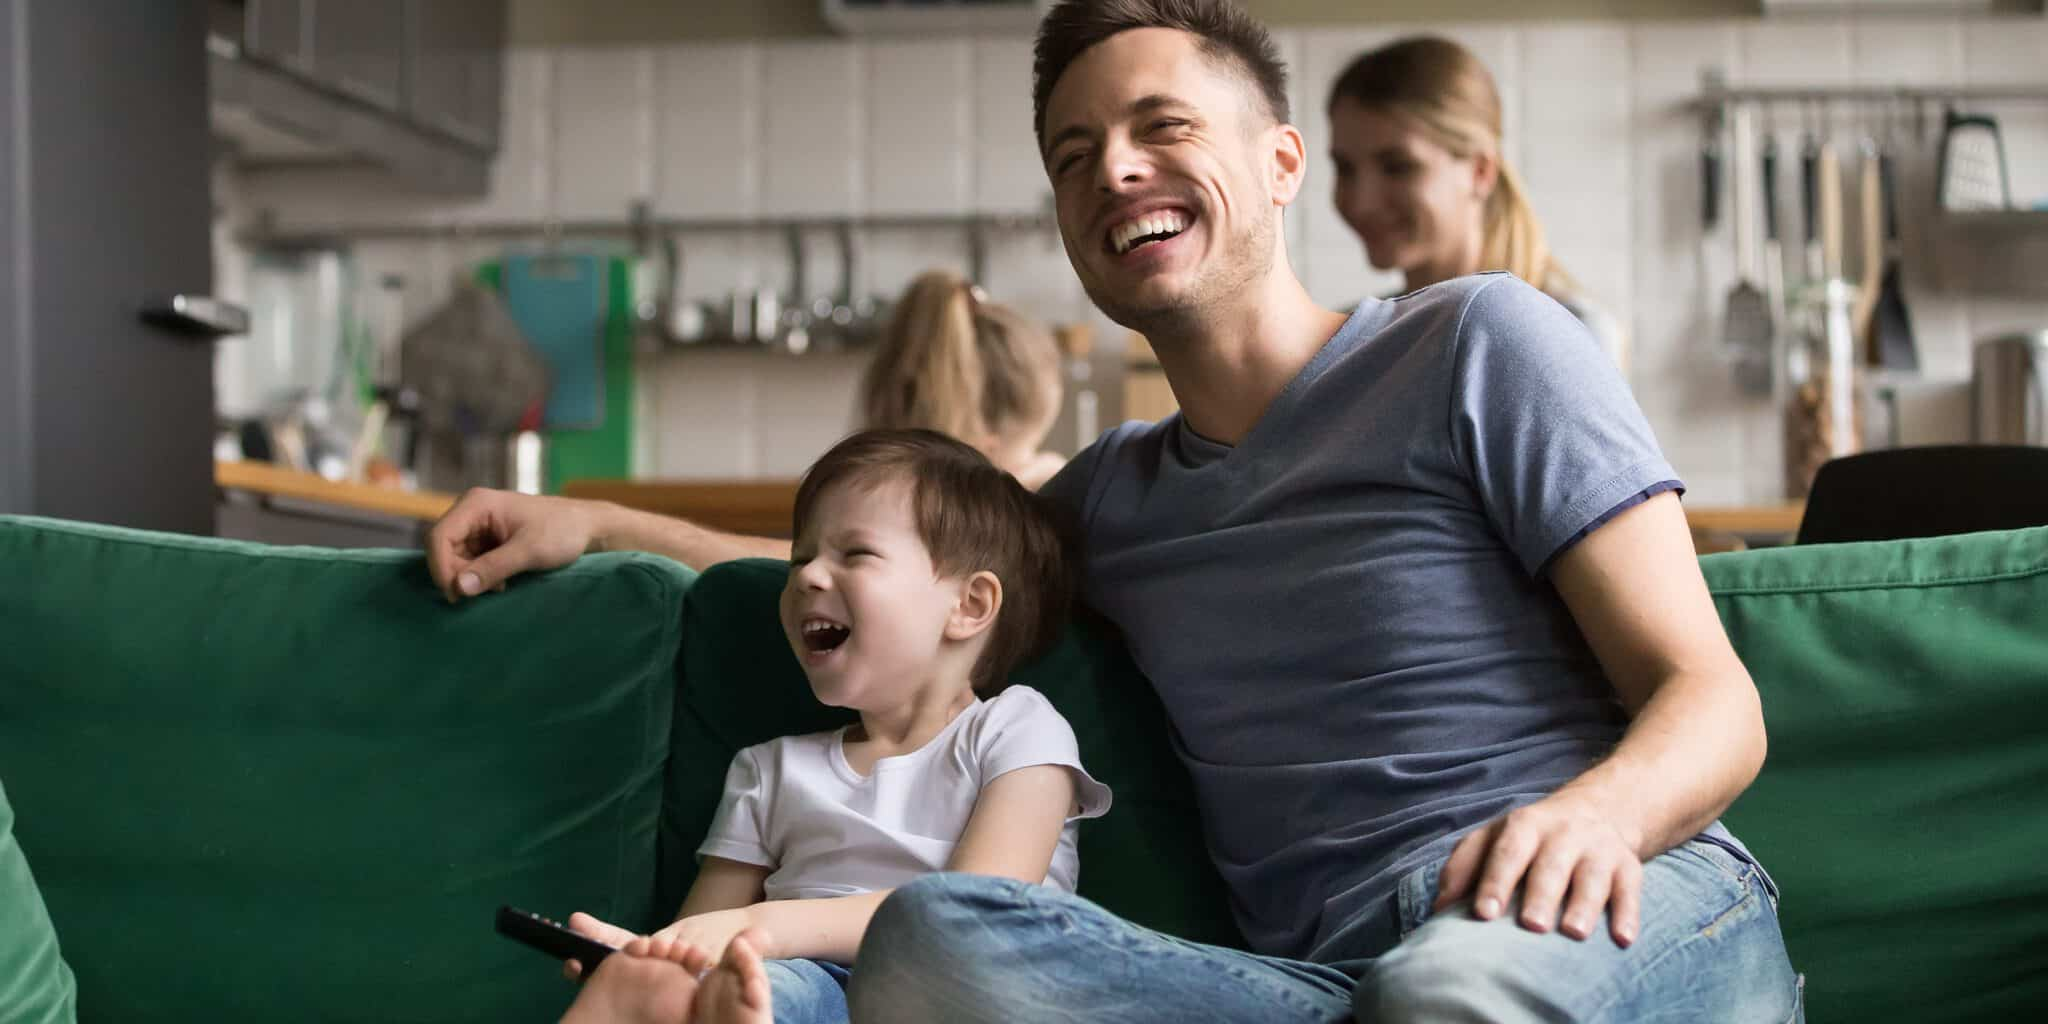 Happy dad and kid son laughing watching tv together